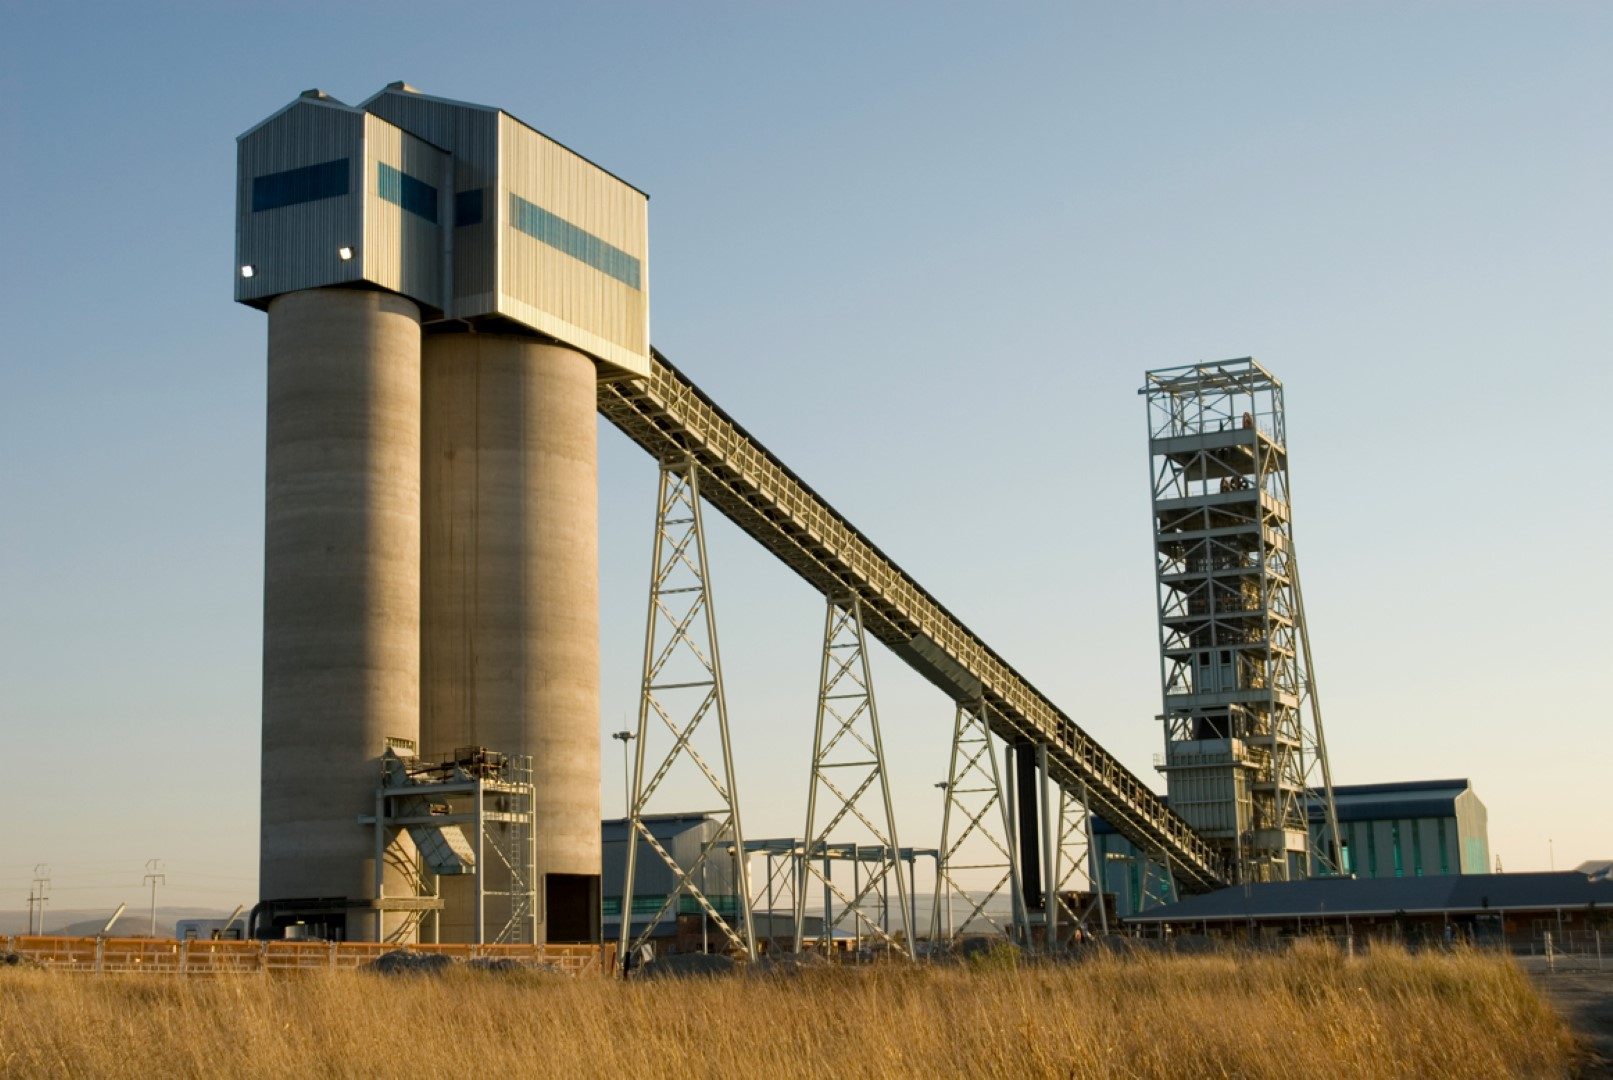 Groundbreaking decision for mining companies